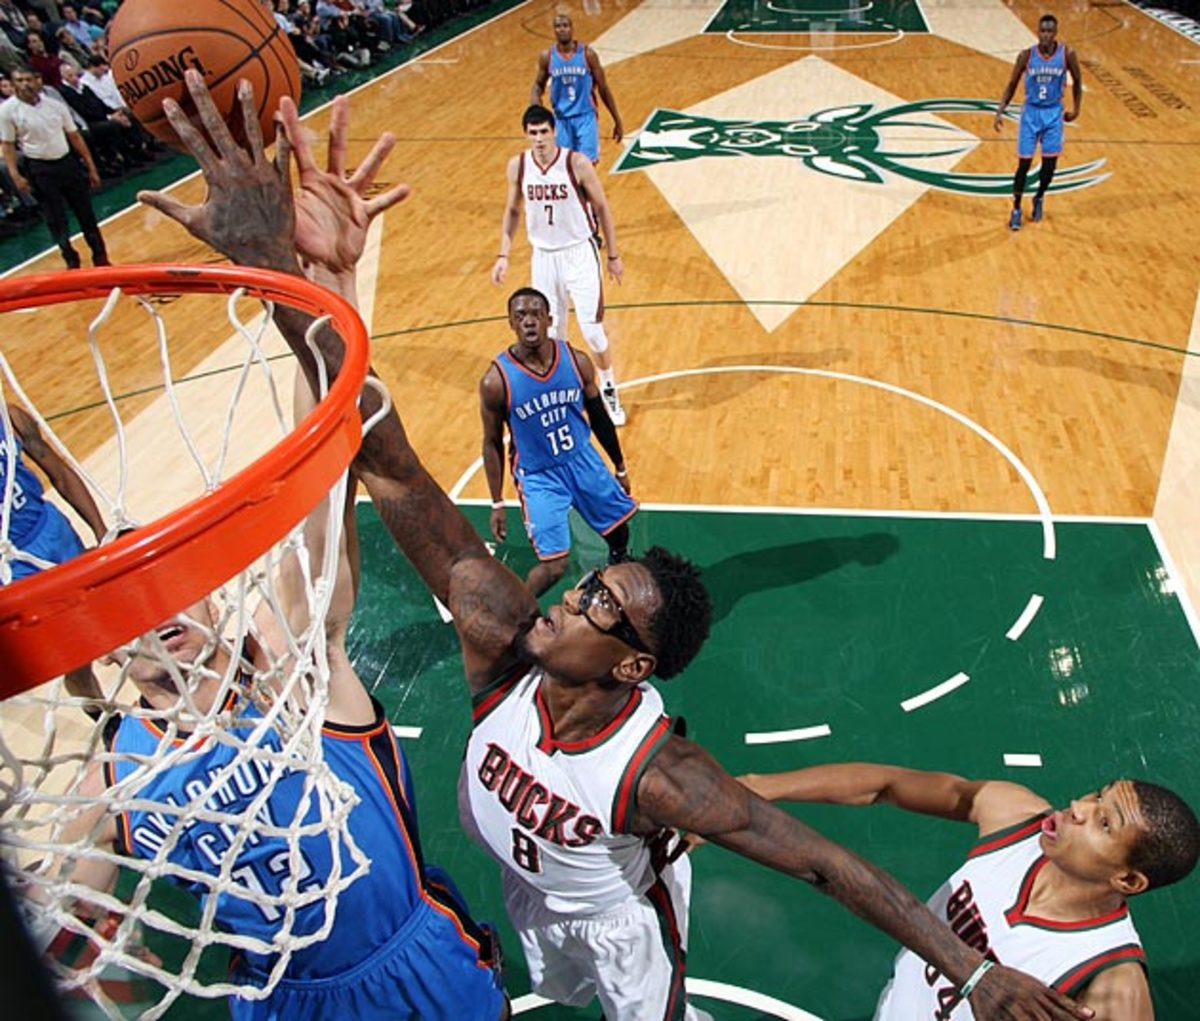 Sanders' ability to protect the rim is a key factor in Milwaukee's defensive improvement.